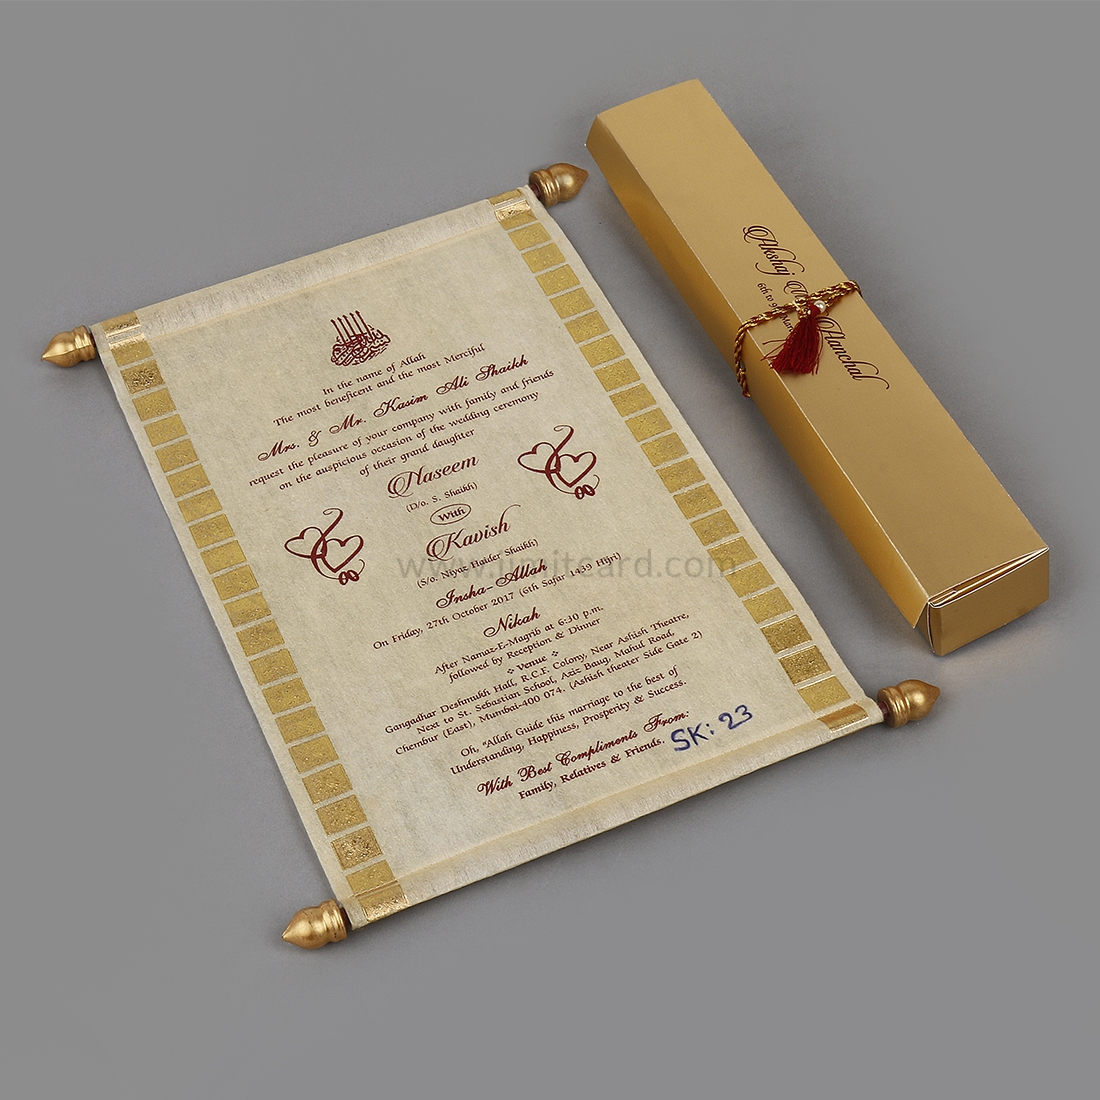 Designer Scroll Wedding Invitation in Golden Wooly Paper-0